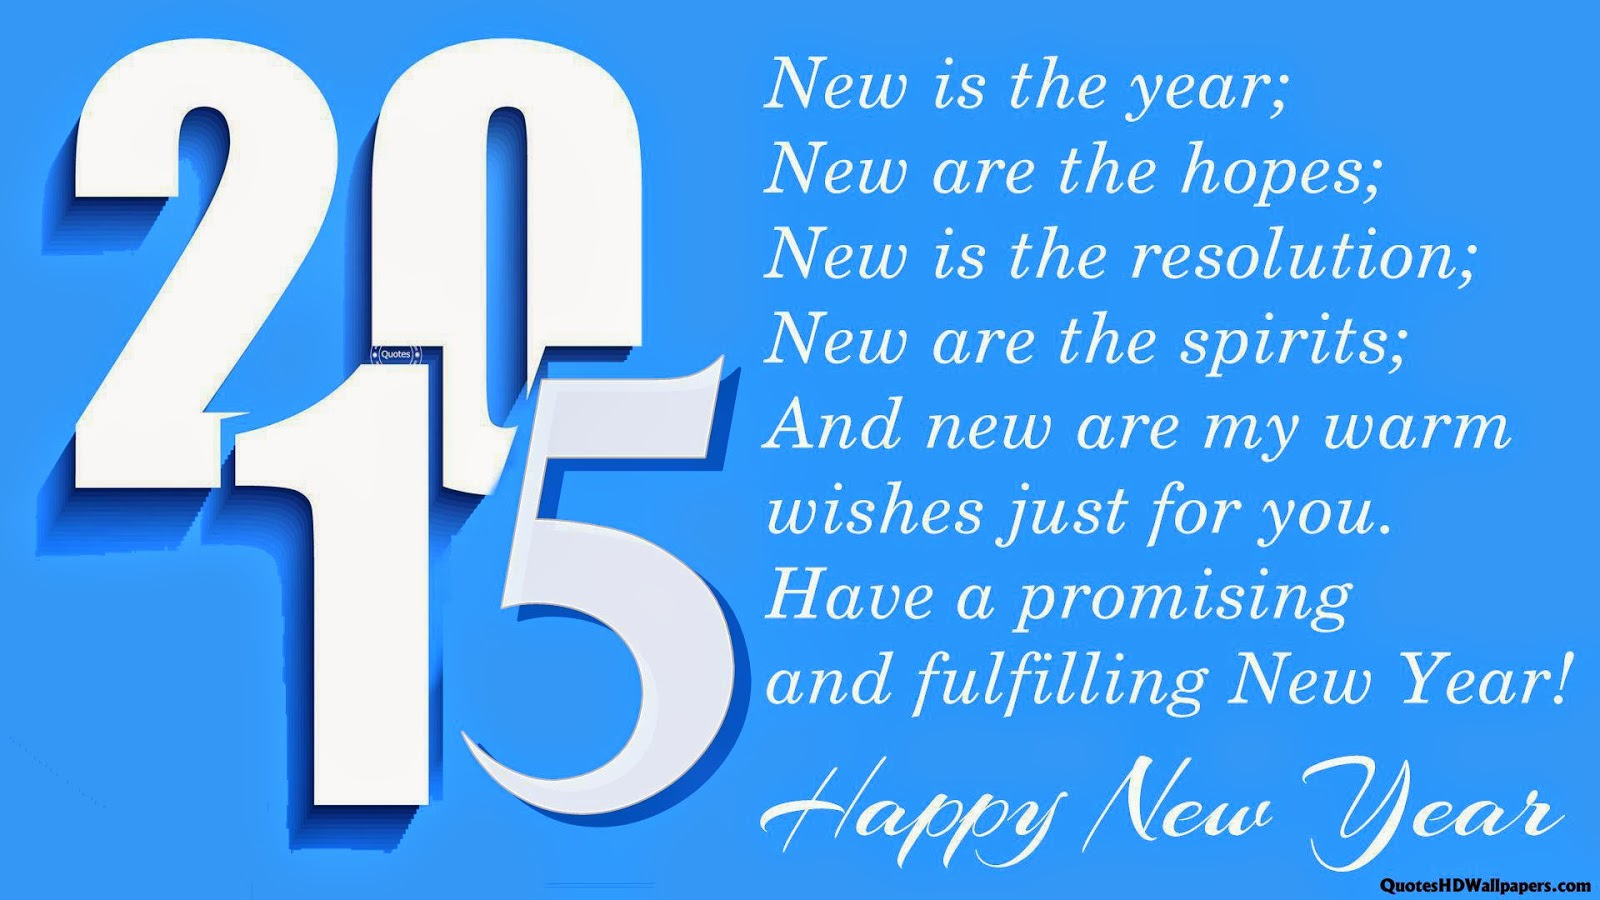 Happy new year 2015 wallpapers quotes love quotes wallpapers happy new year 2015 wallpapers quotes kristyandbryce Images